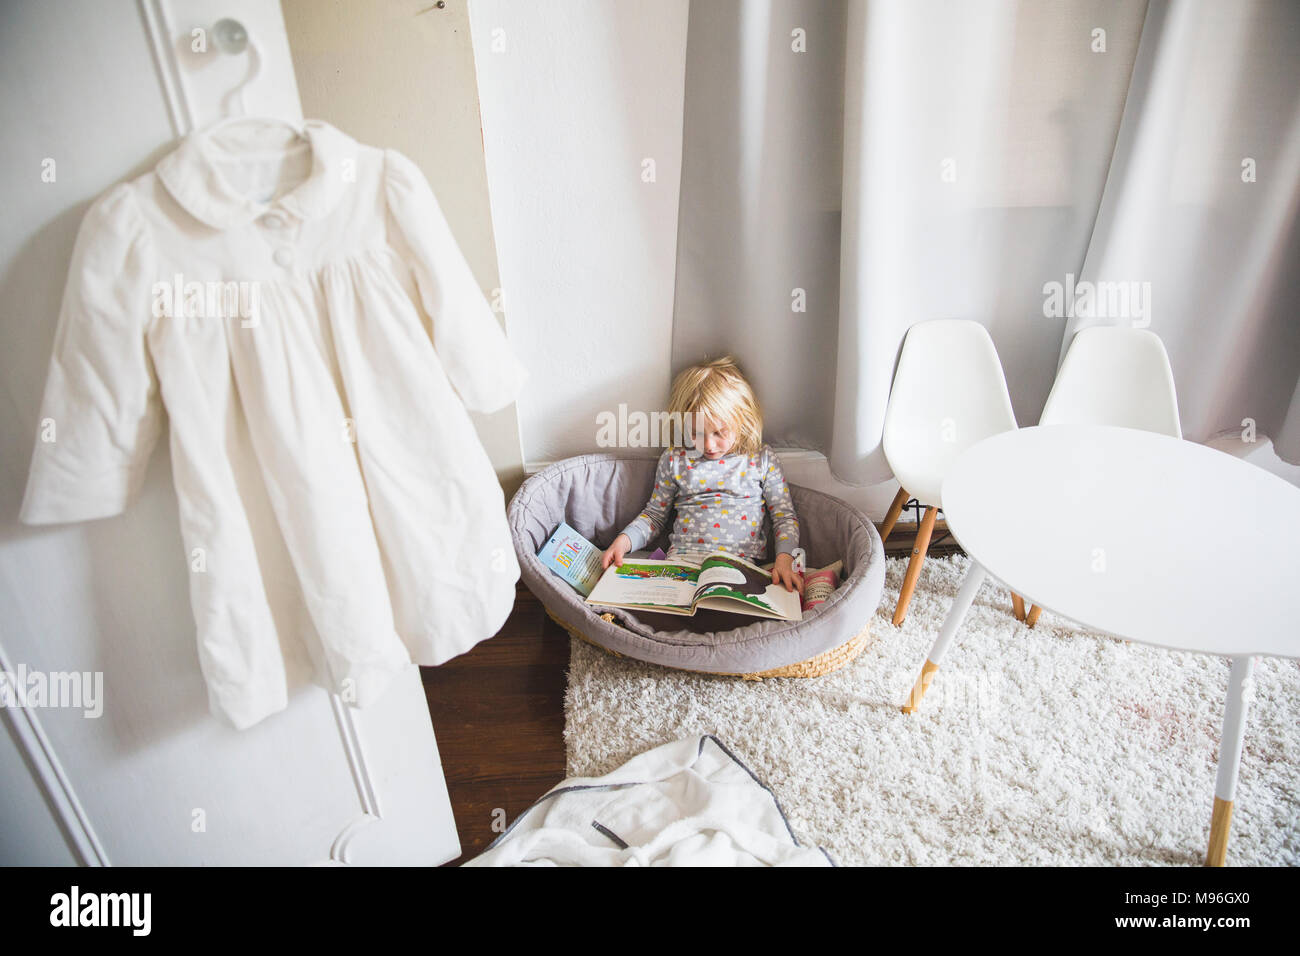 Girl sitting in playroom reading peacefully Stock Photo